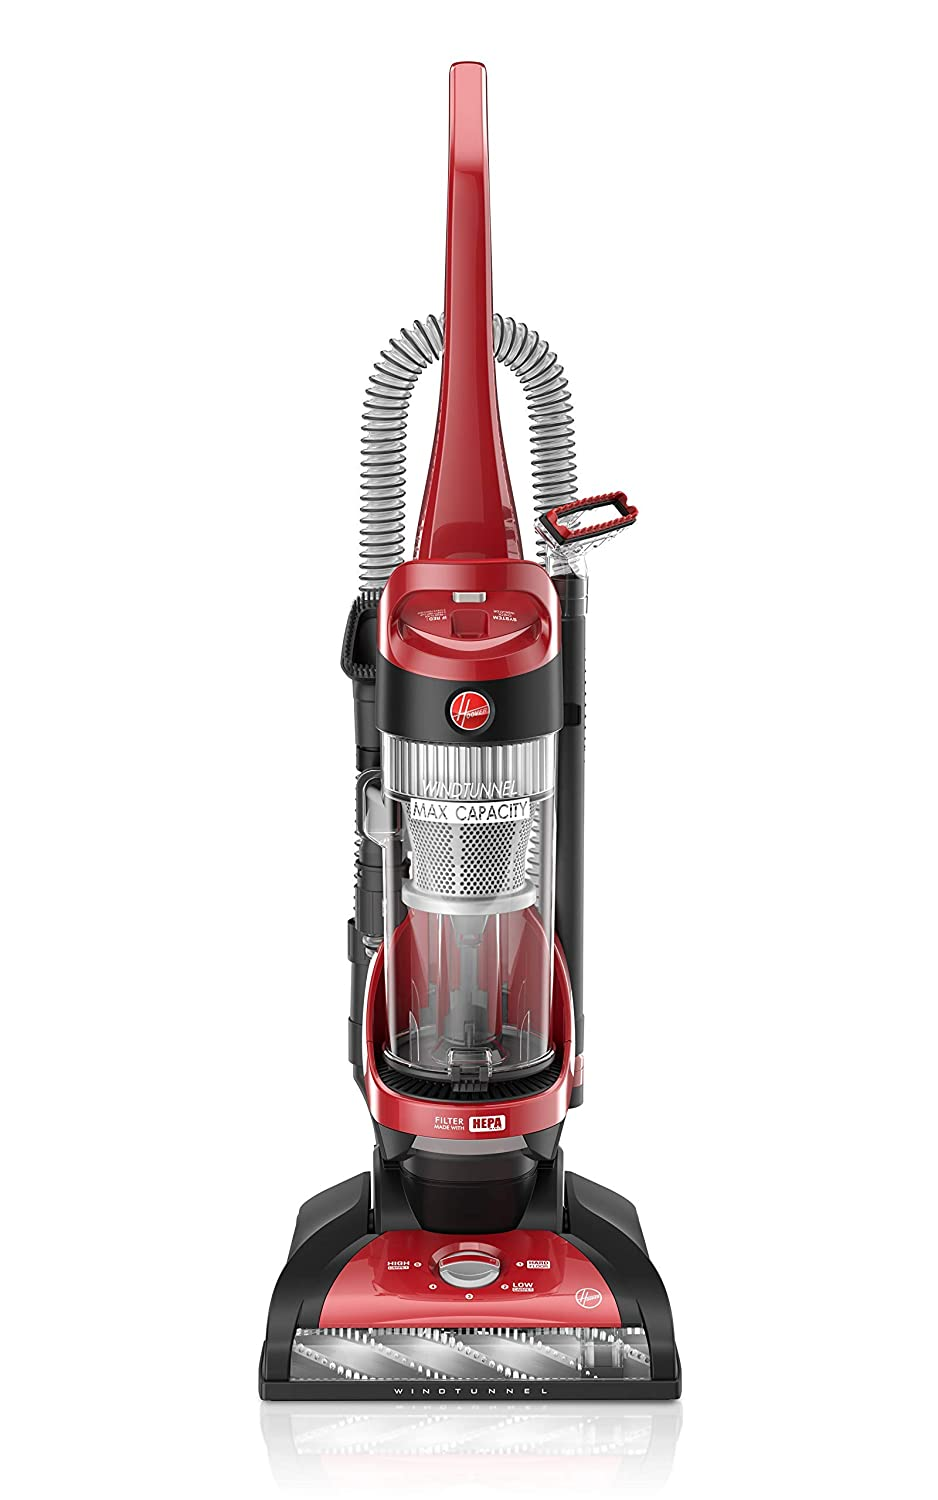 Hoover Windtunnel Max Capacity Upright Vacuum Cleaner with HEPA Filter, UH71100, Red (Renewed)